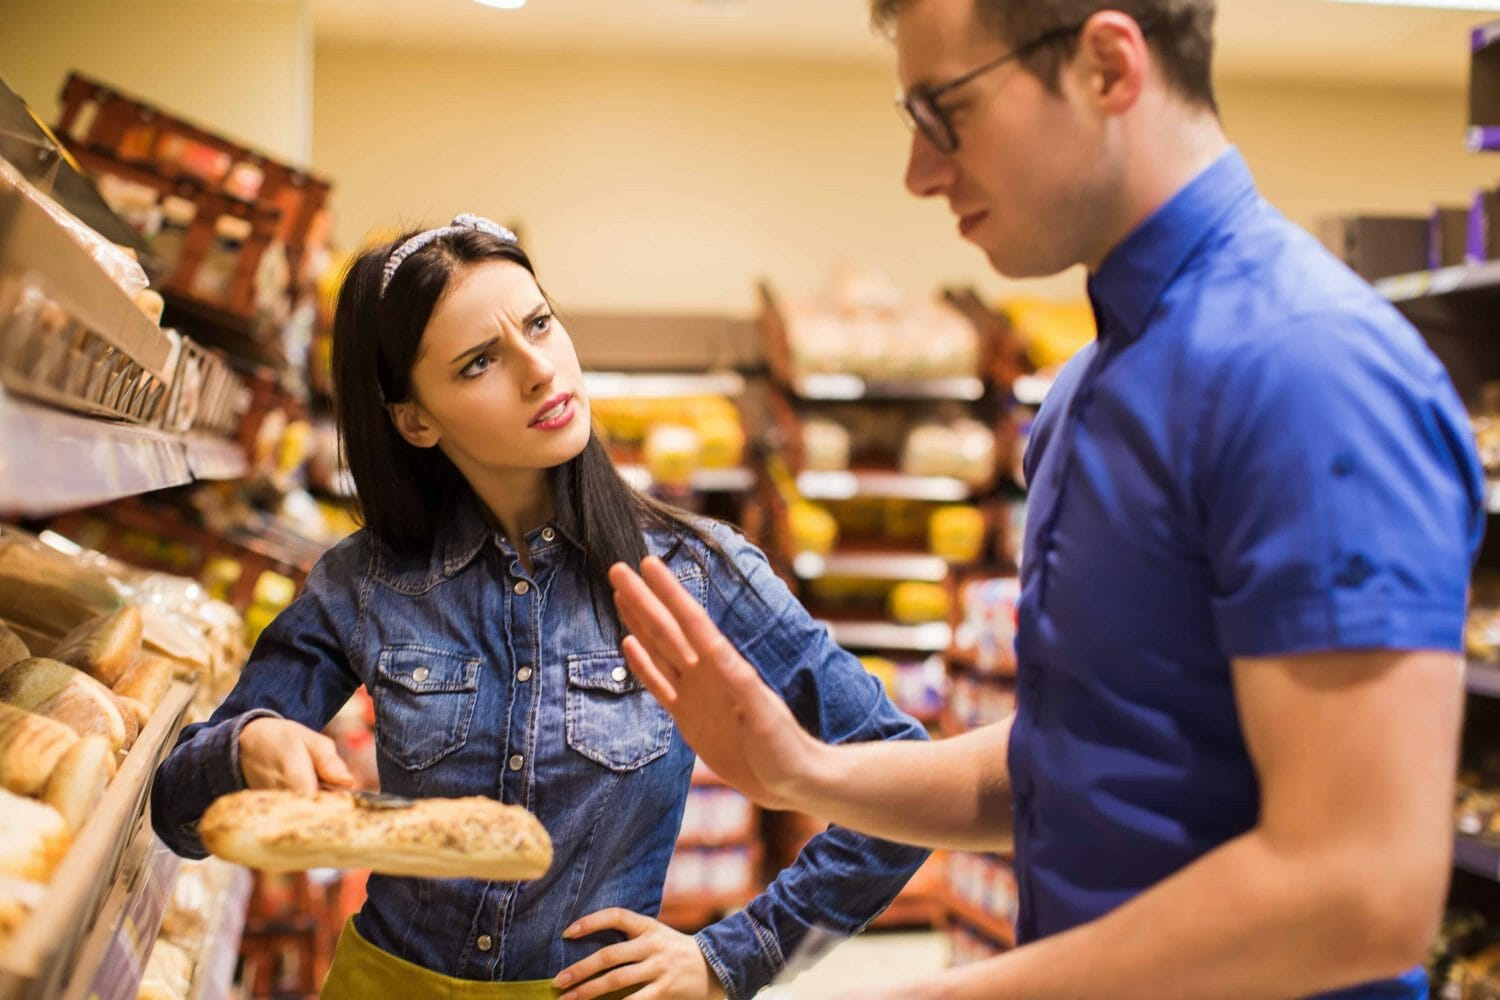 Don't Stand so Close to Me: Exactly How Personal Should Personalized Retail Be